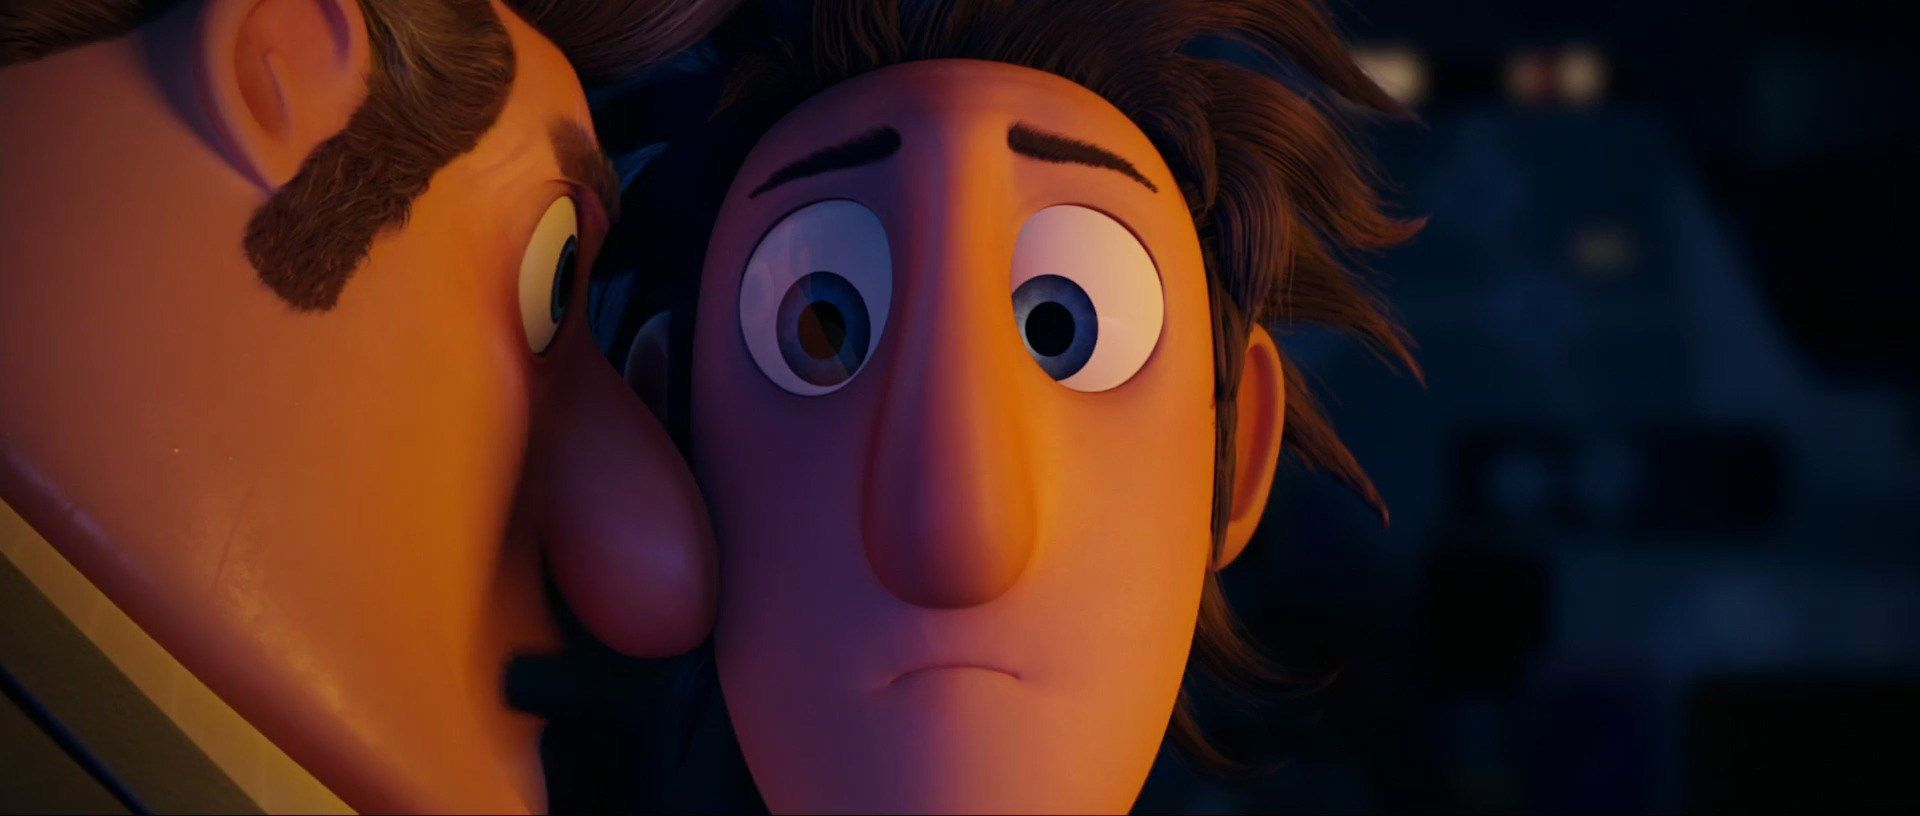 Cloudy With A Chance Of Meatballs 2009 Disney Screencaps Animation Cloudy Disney